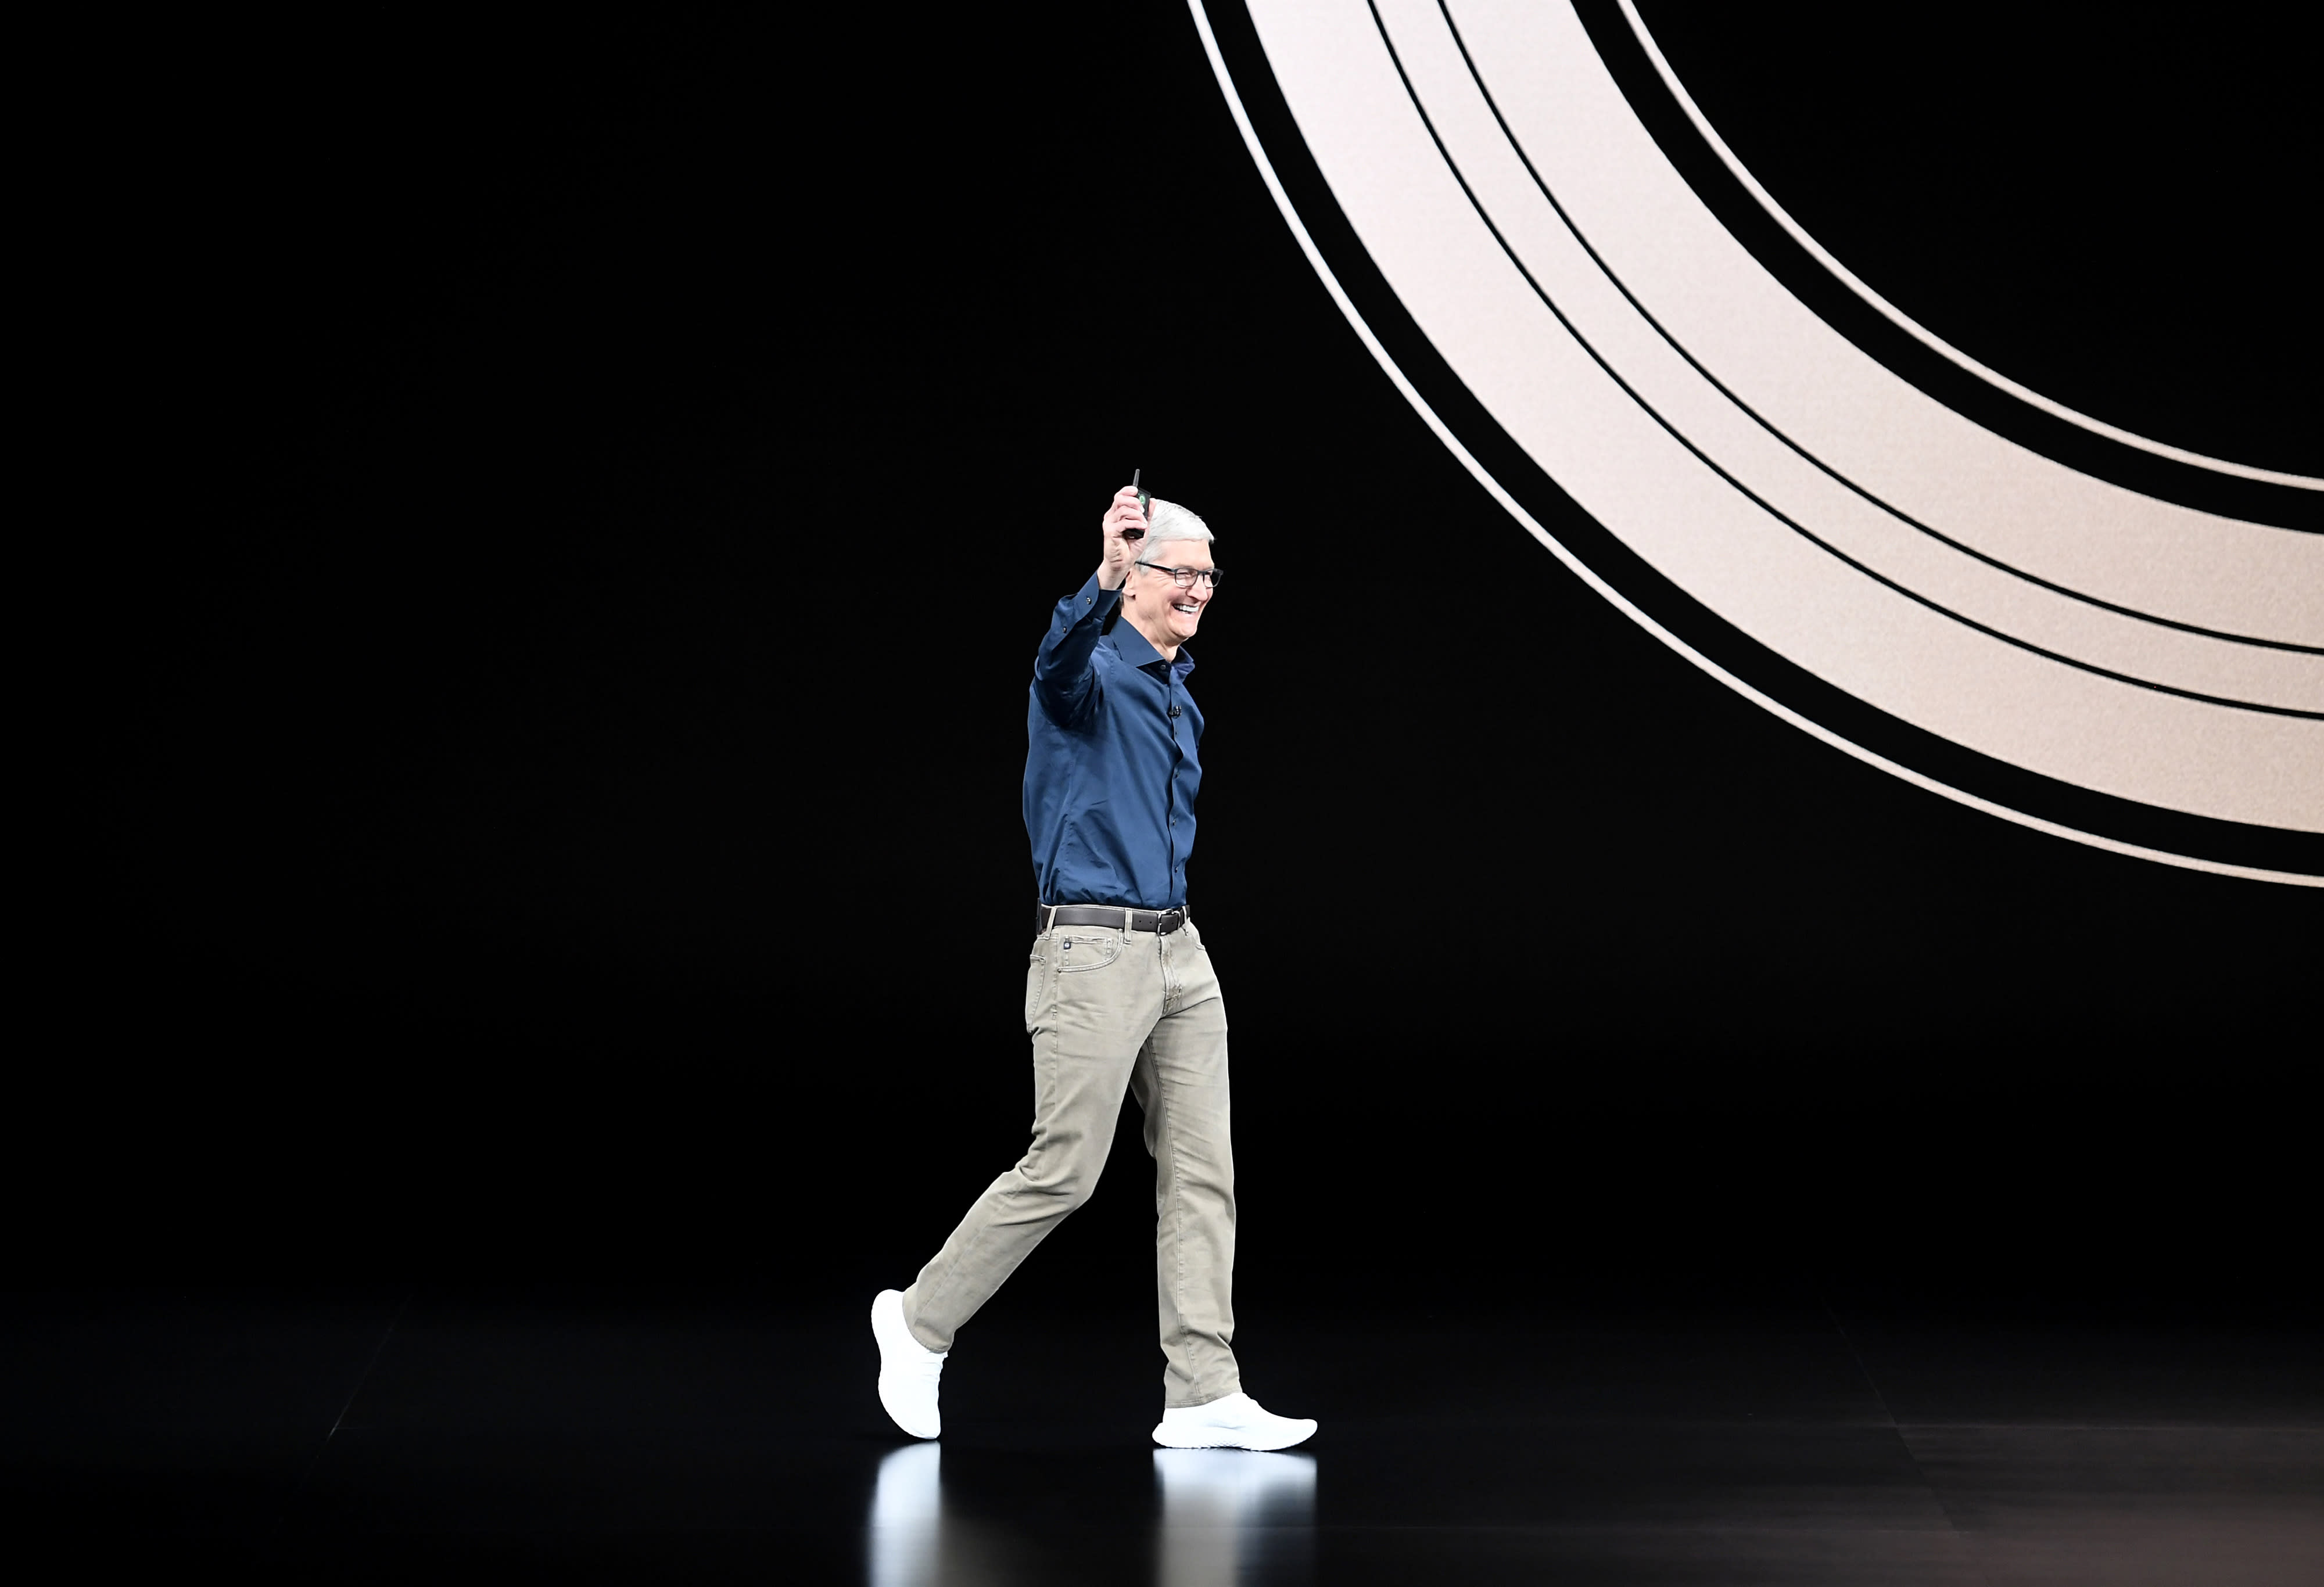 Apple is about to unveil new iPhones at its annual hardware event